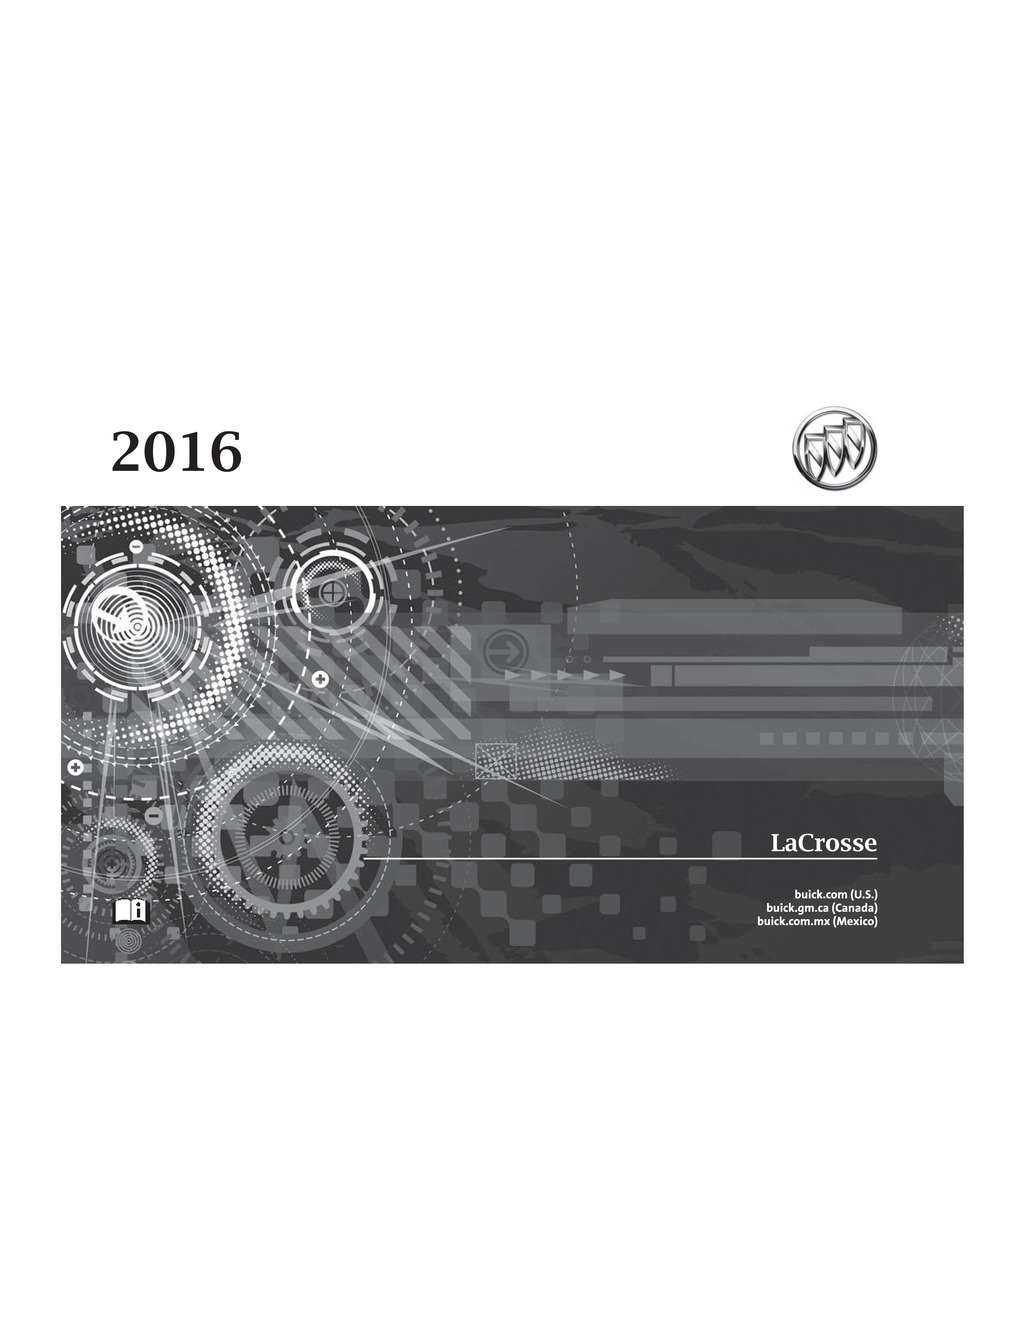 2016 Buick Lacrosse owners manual